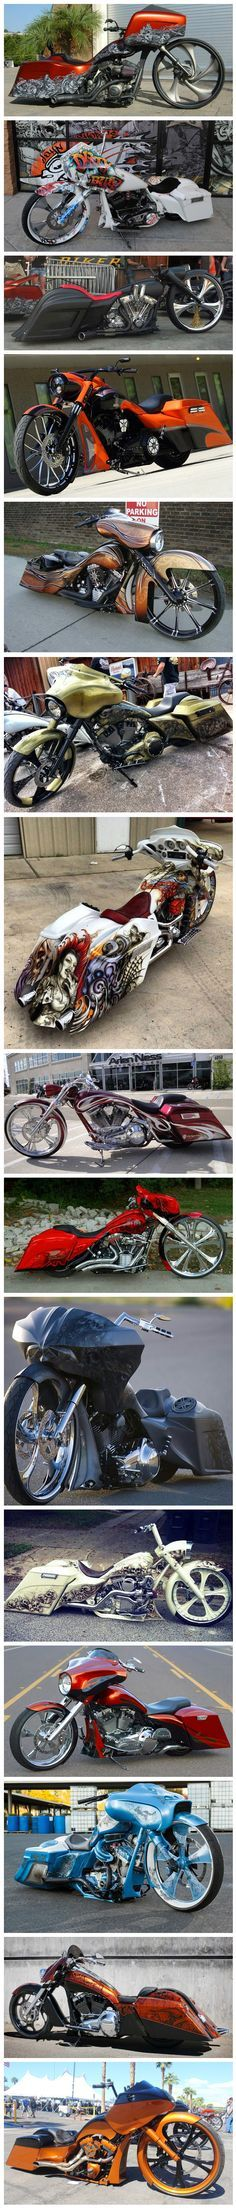 Customized Harley Davidson Motorcycles